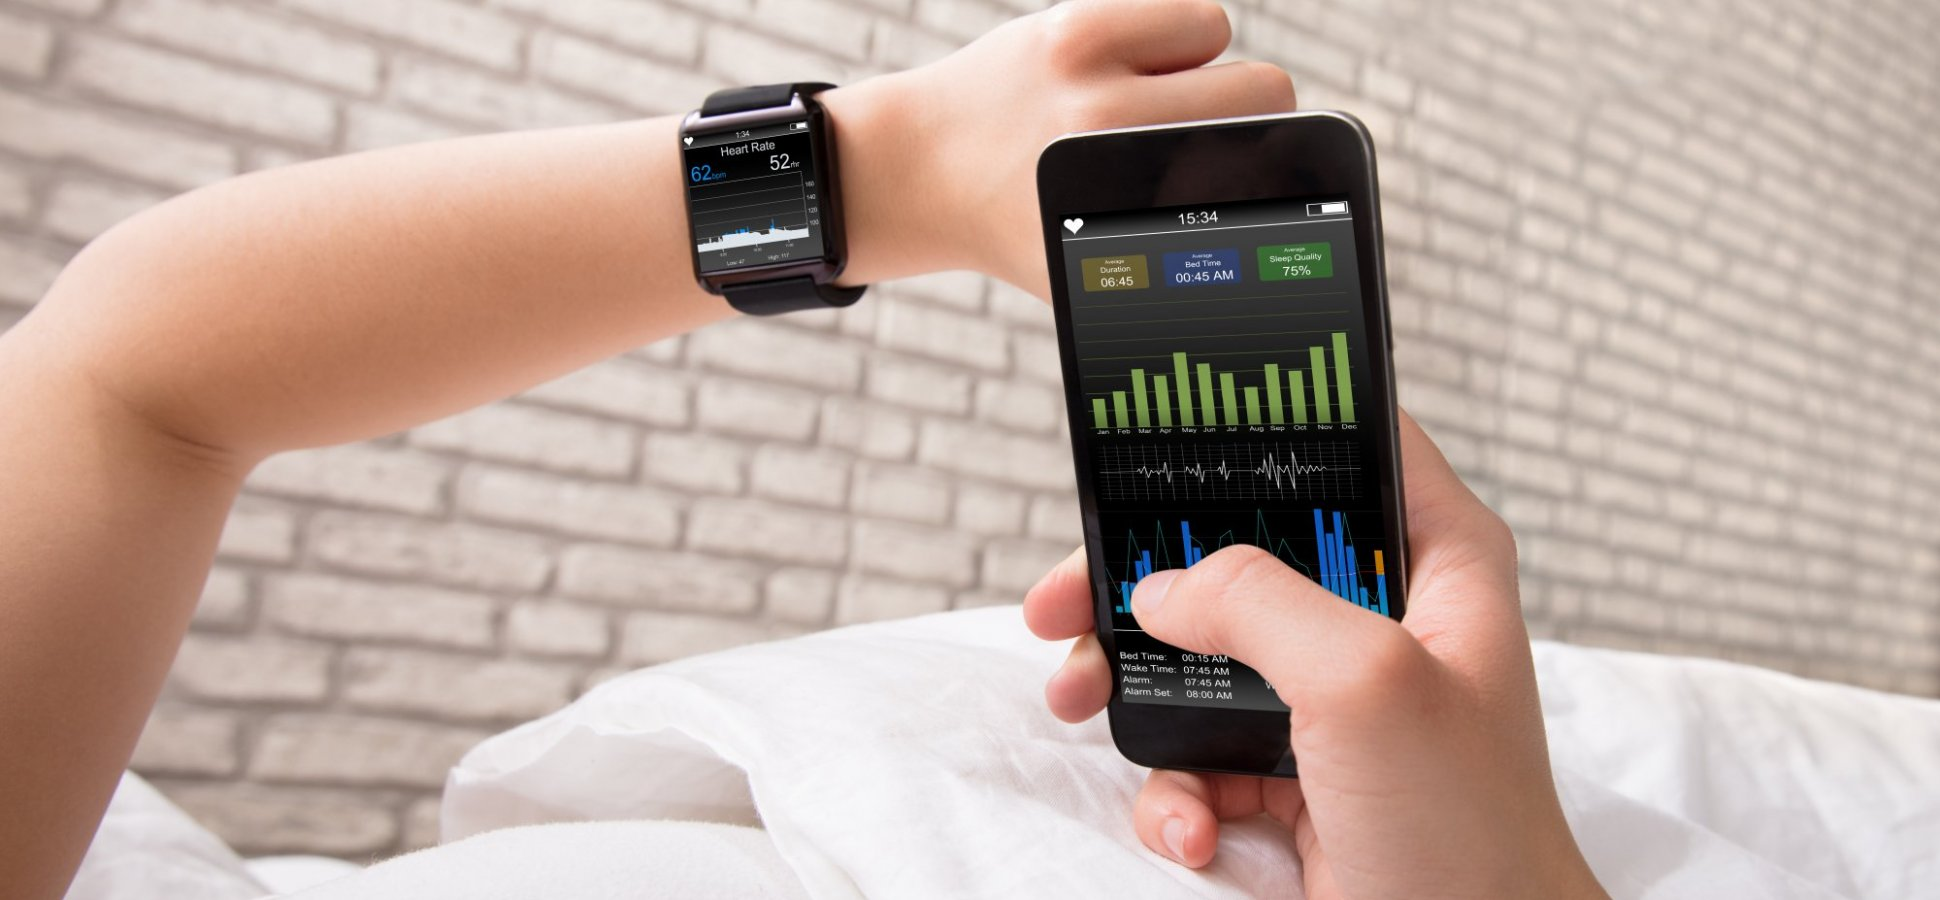 Science Has Identified a New Sleep Disorder Caused by Sleep Trackers